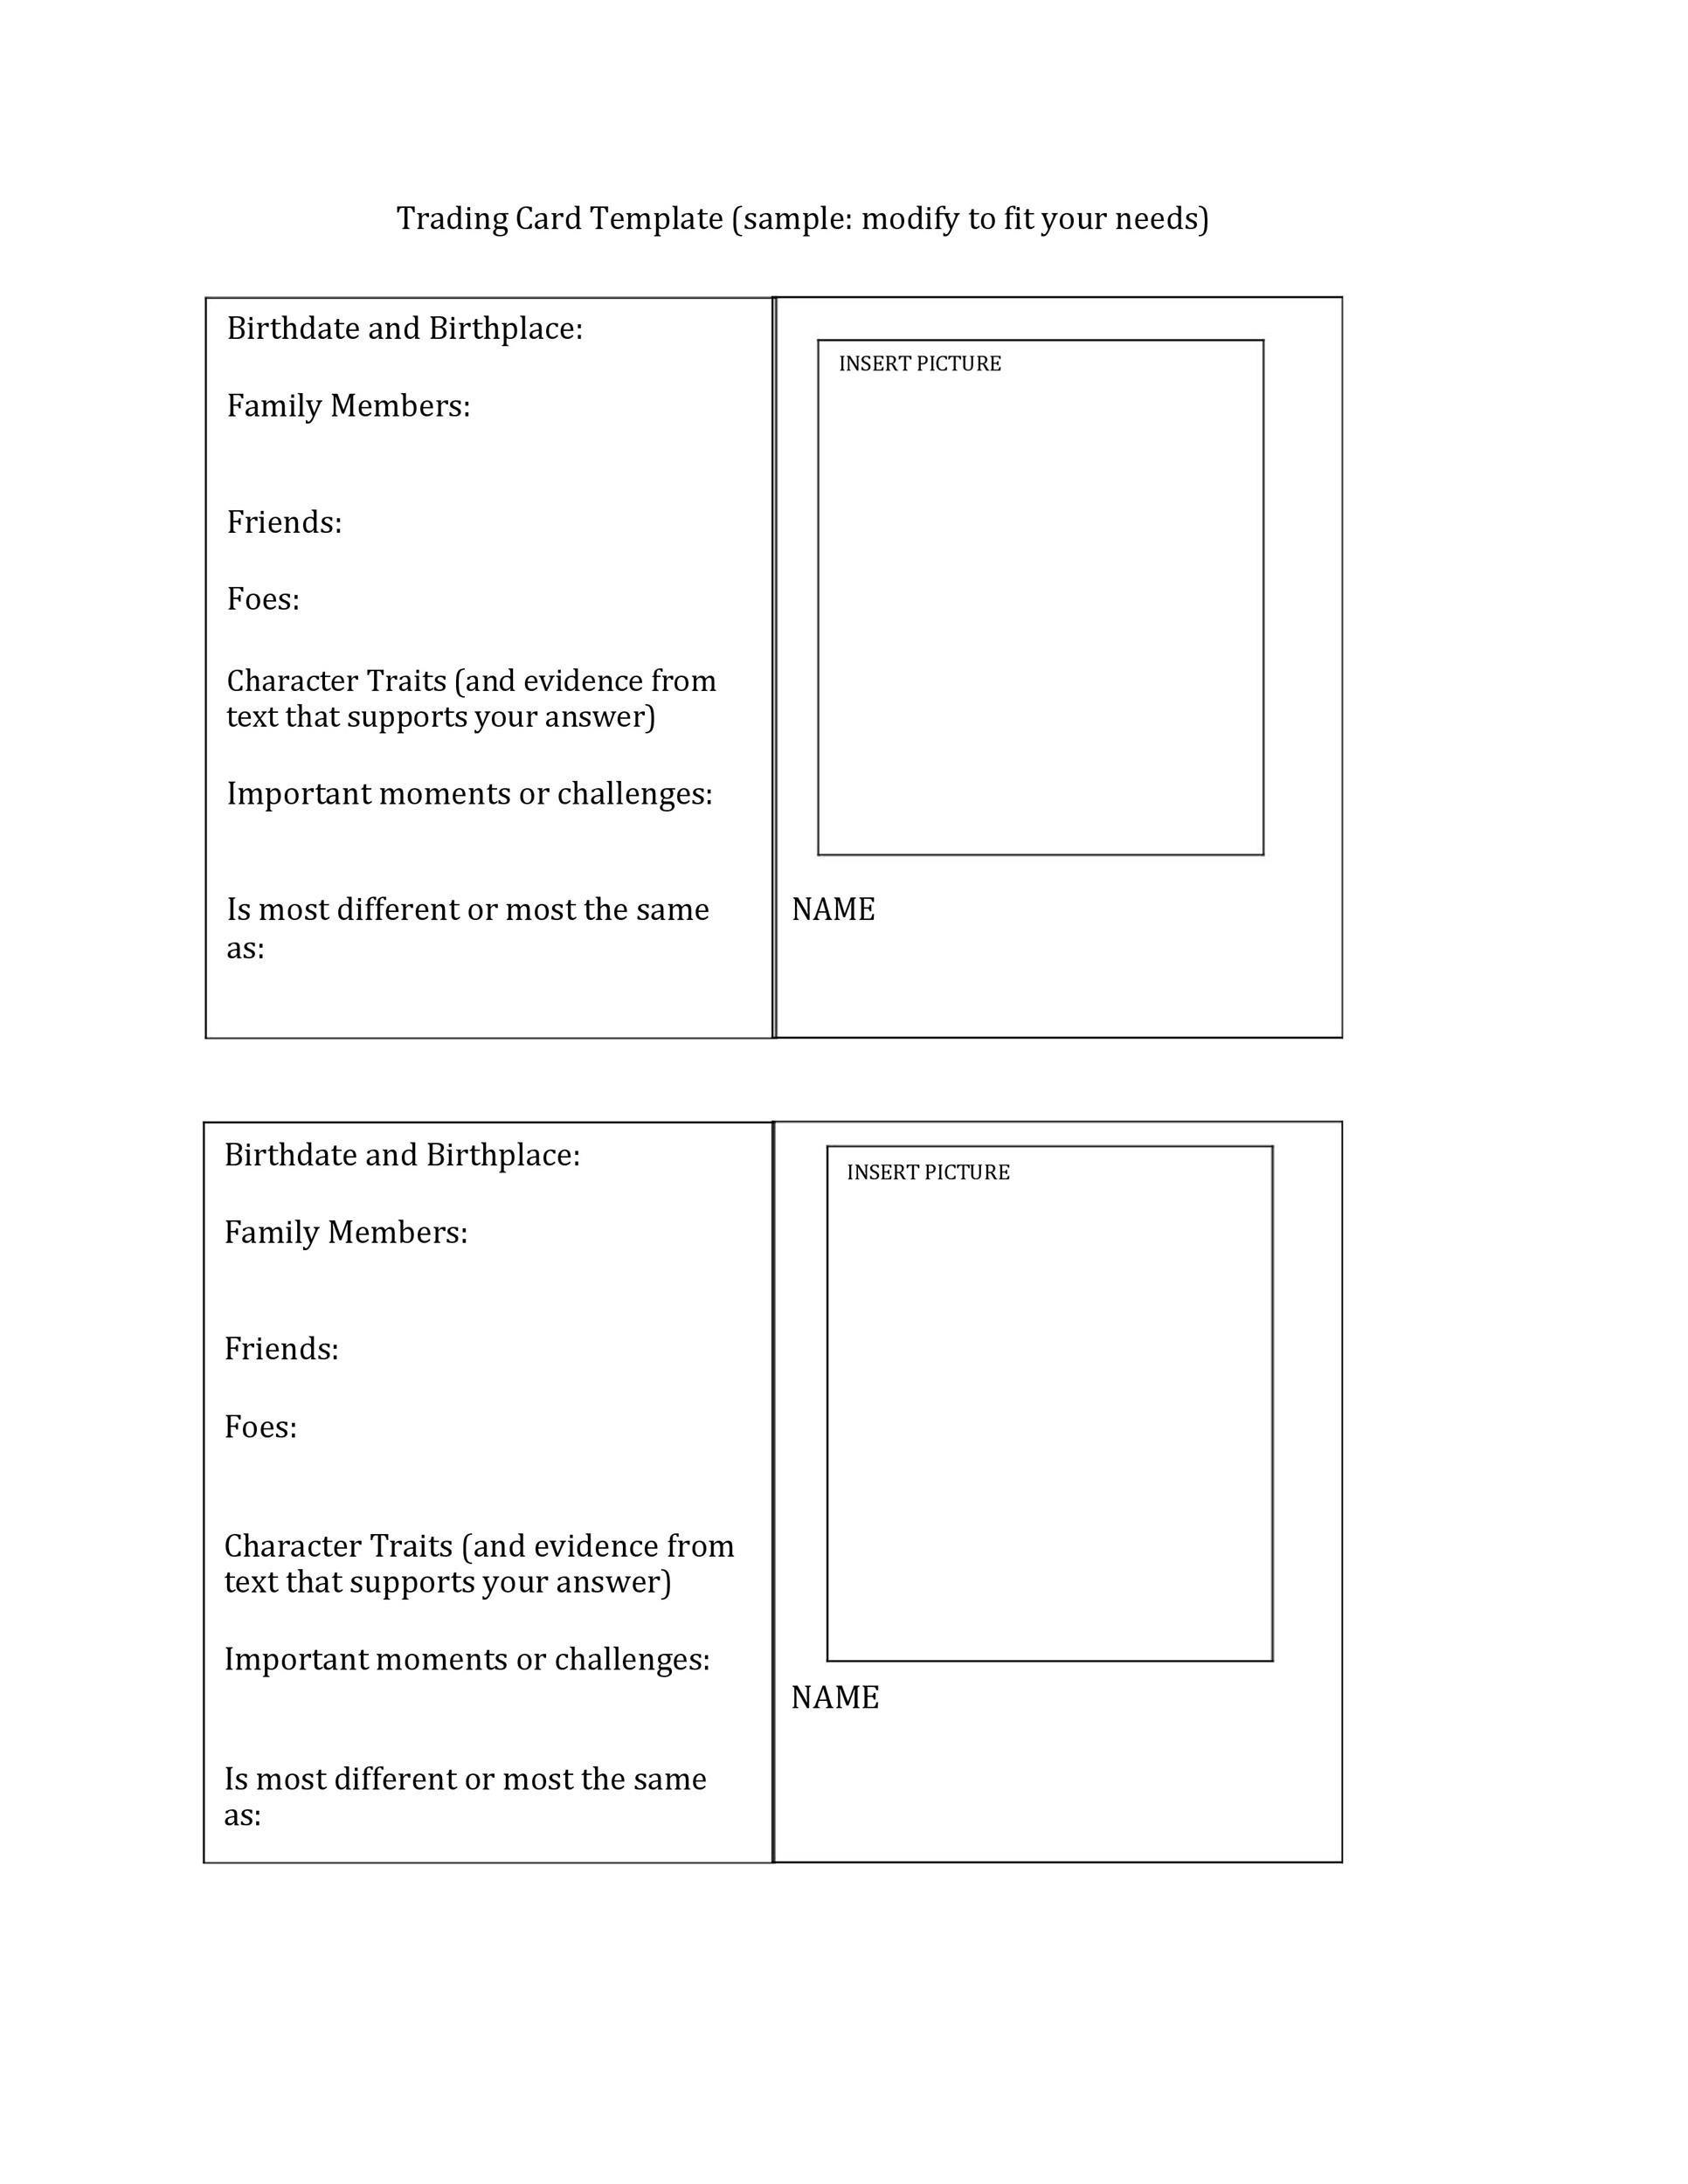 Free trading card template 08